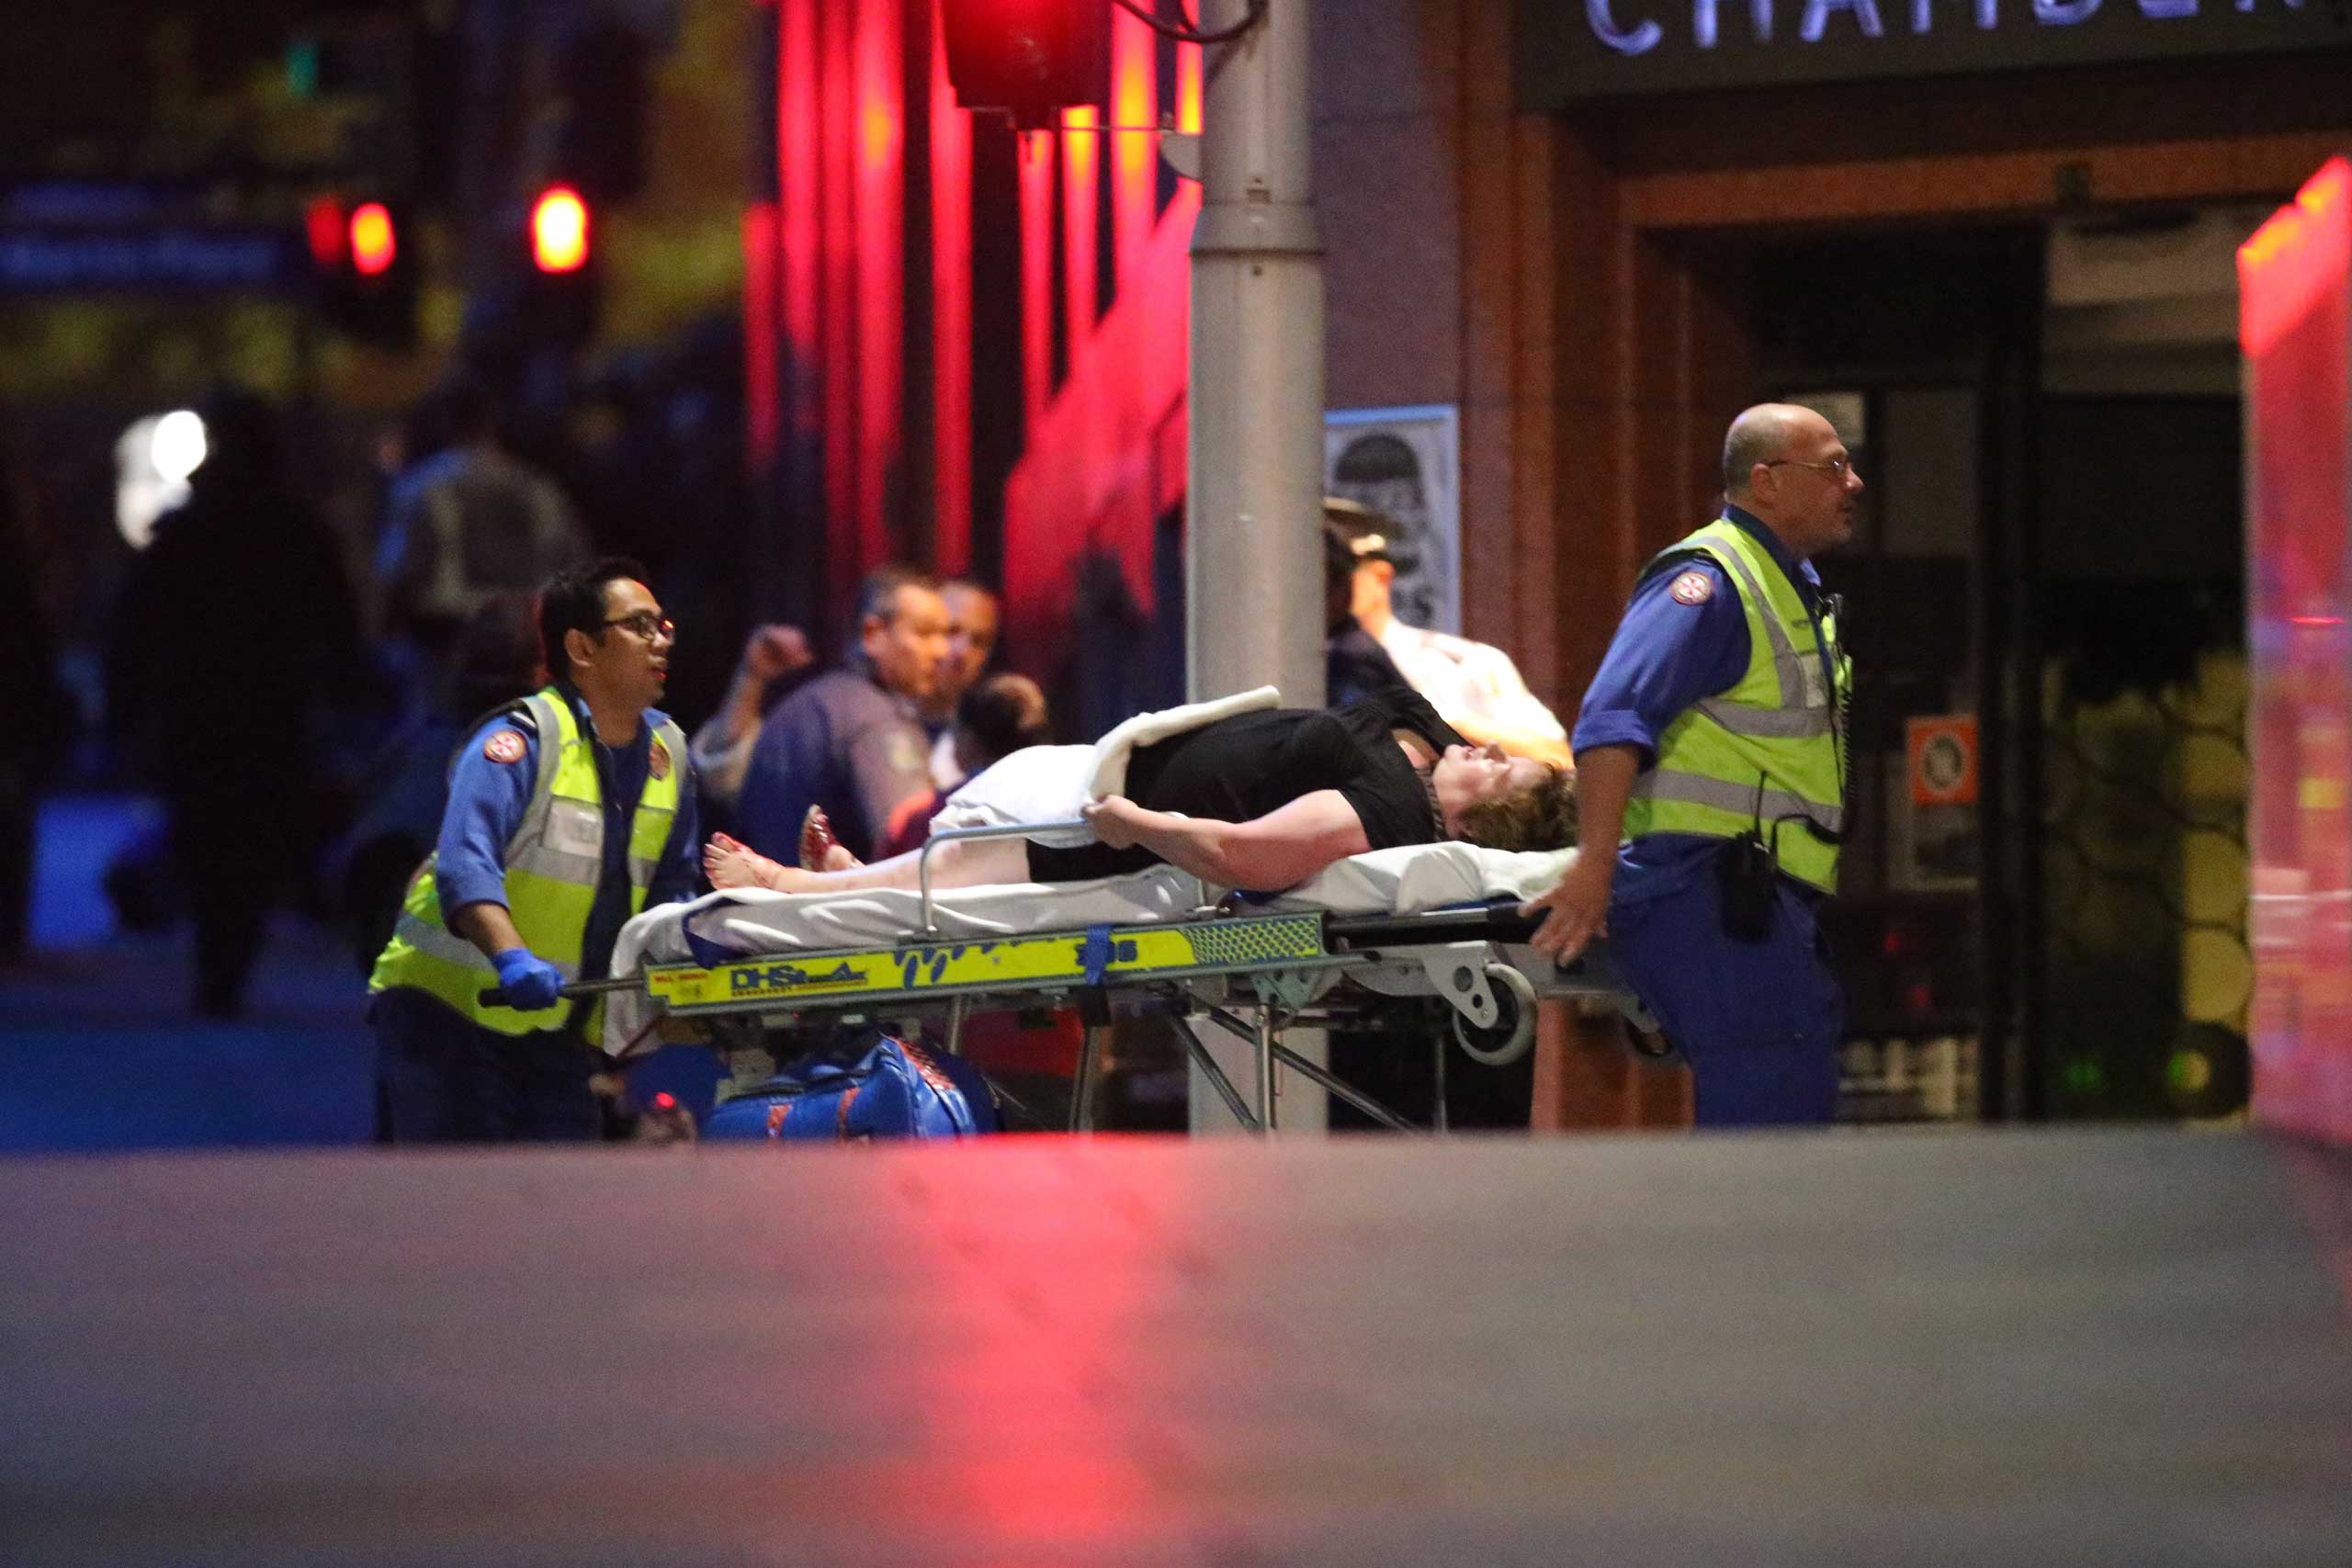 A injured hostage is wheeled to an ambulance after shots were fired during  a cafe  siege at Martin Place in the central business district of Sydney, Dec. 16, 2014.